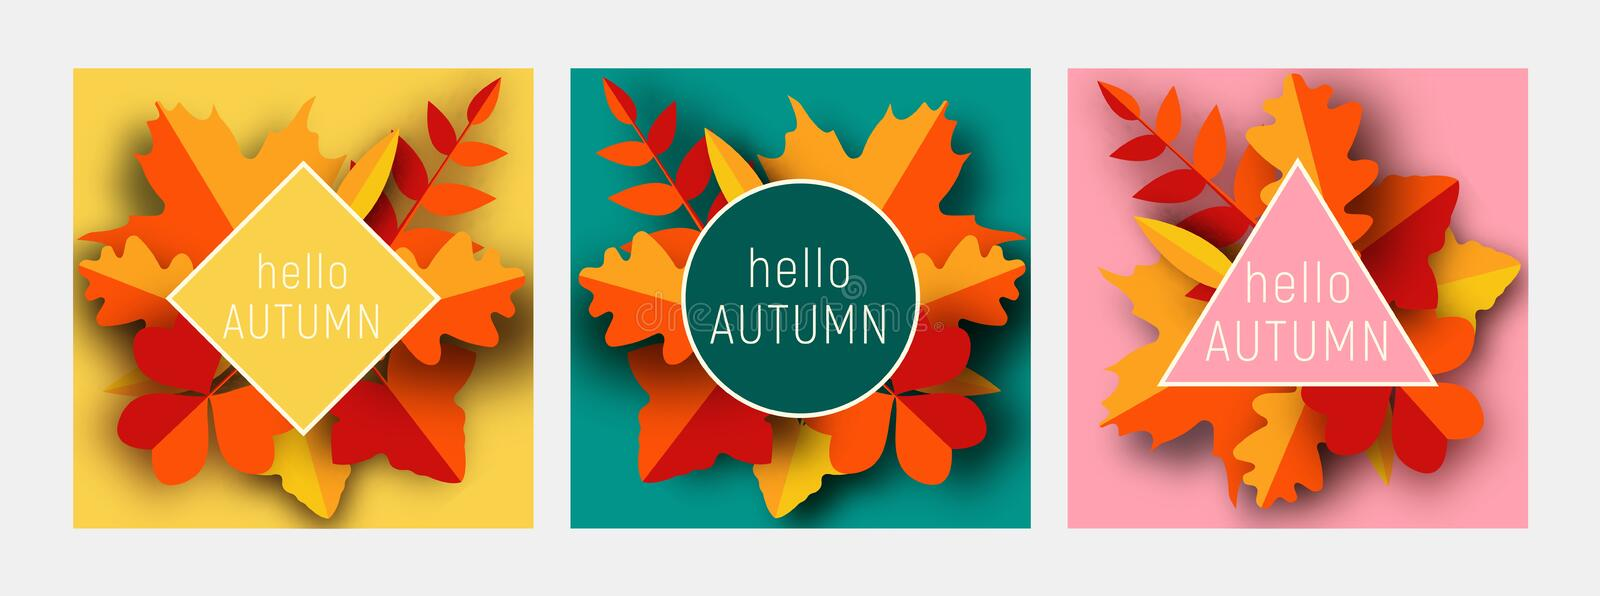 Hello autumn greeting card template set. Fall illustration with paper cut orange, red and yellow leaves. vector illustration